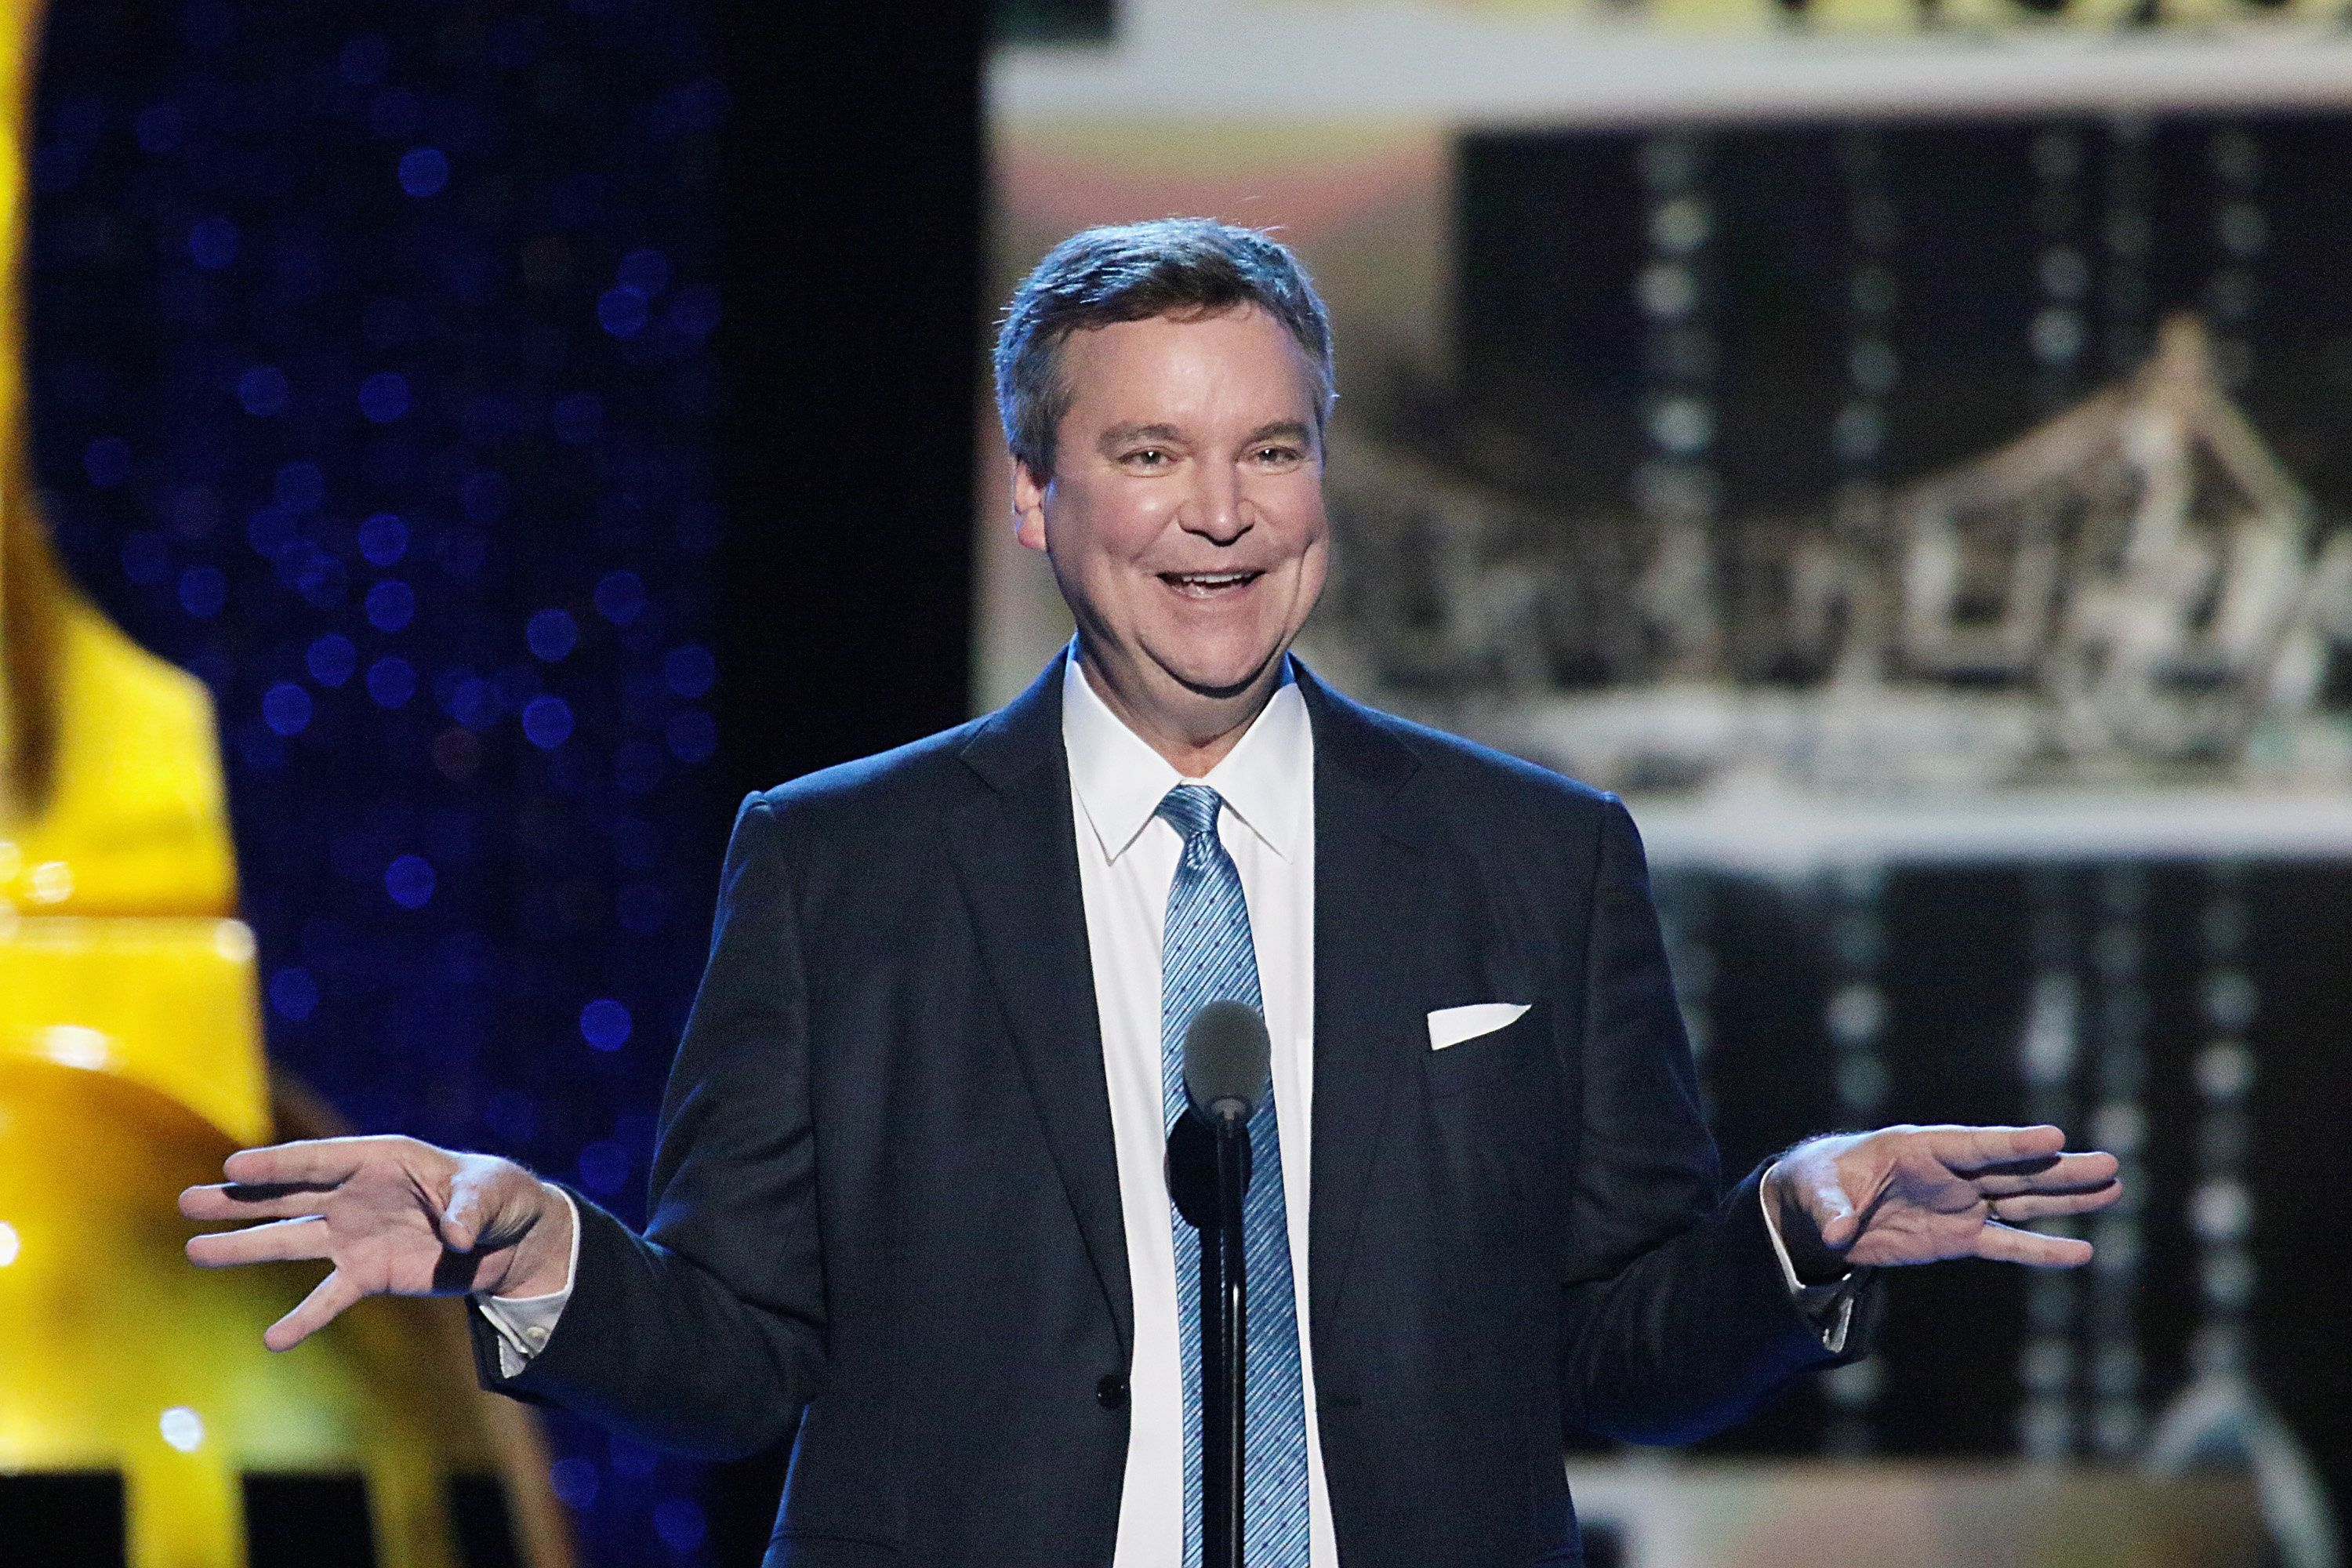 ATLANTIC CITY, NJ - SEPTEMBER 08:  Author Sam Haskell speaks onstage during Miss America 2017 - 3rd Night of Preliminary Competition at Boardwalk Hall Arena on September 8, 2016 in Atlantic City, New Jersey.  (Photo by Donald Kravitz/Getty Images)